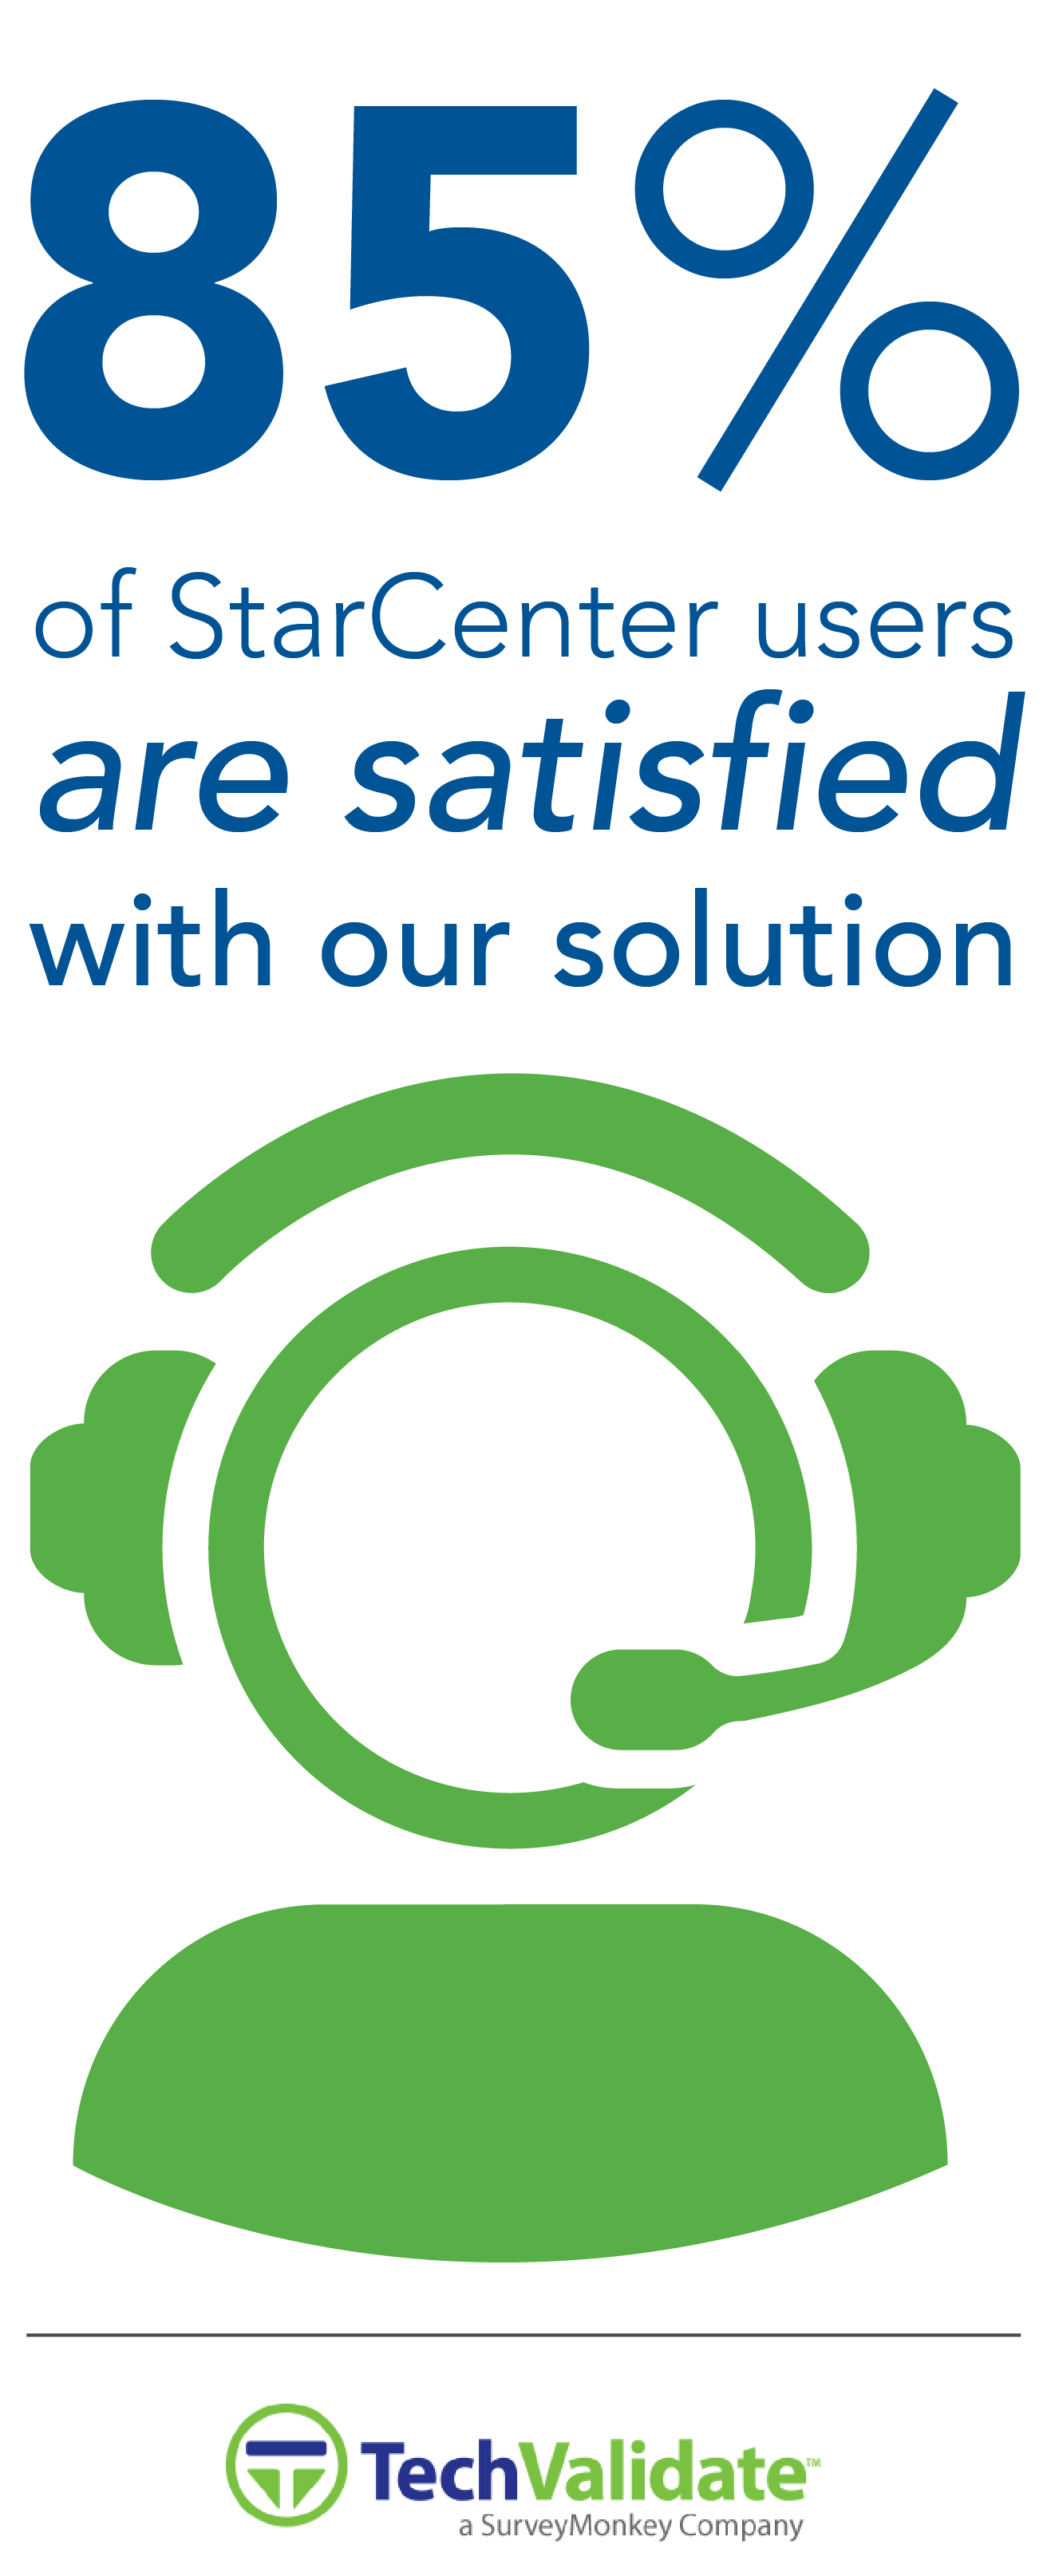 85% of surveyed customers are satisfied with StarCenter